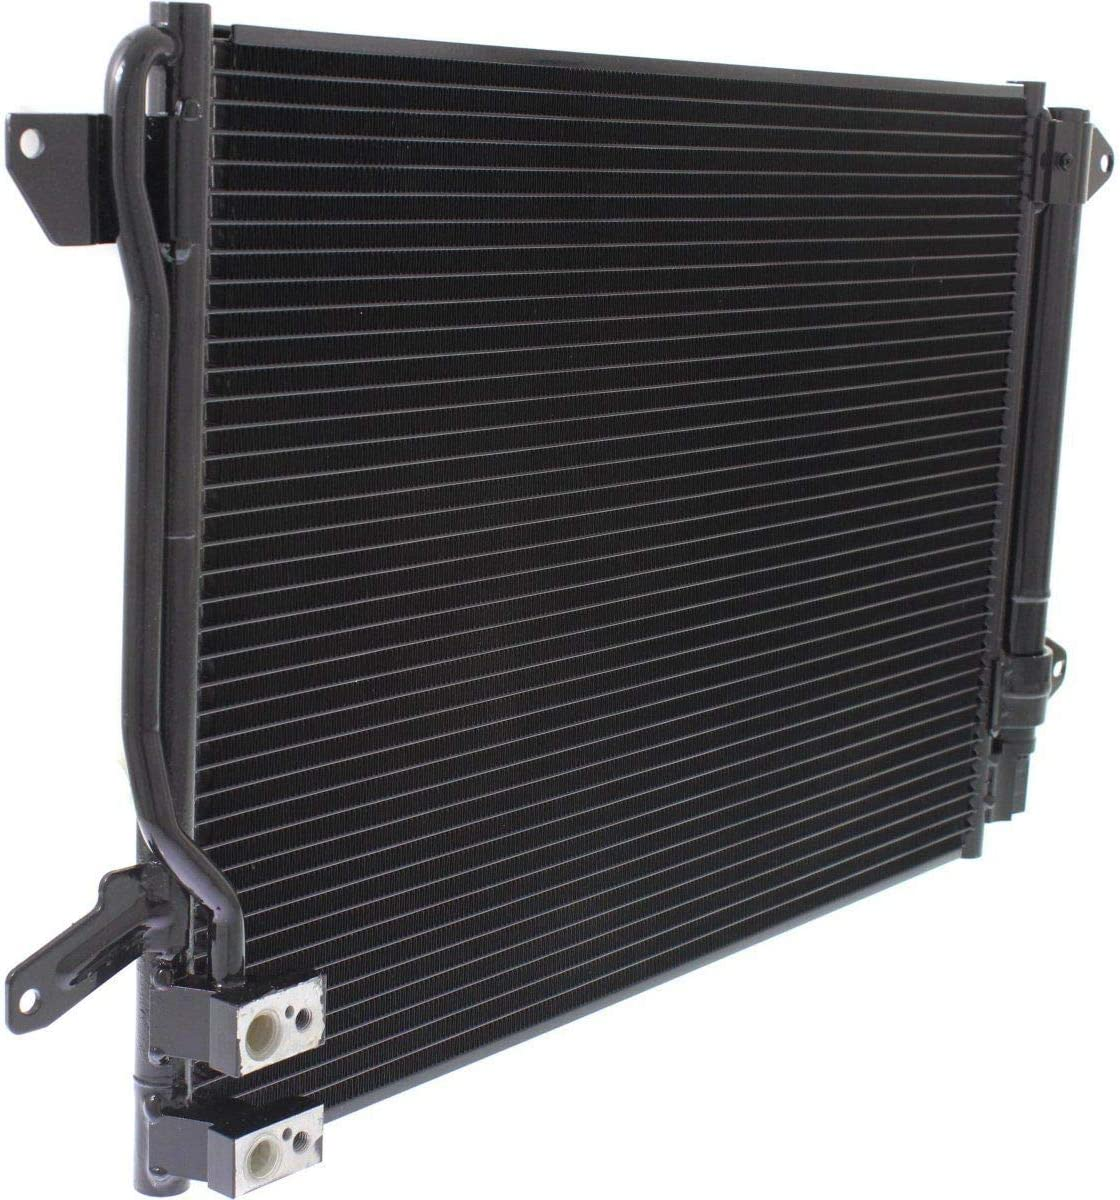 Hybrid Model 16-16 VW3030132 New Ac Condenser For 2009-2016 Volkswagen Jetta And 2012-2015 Volkswagen Beetle